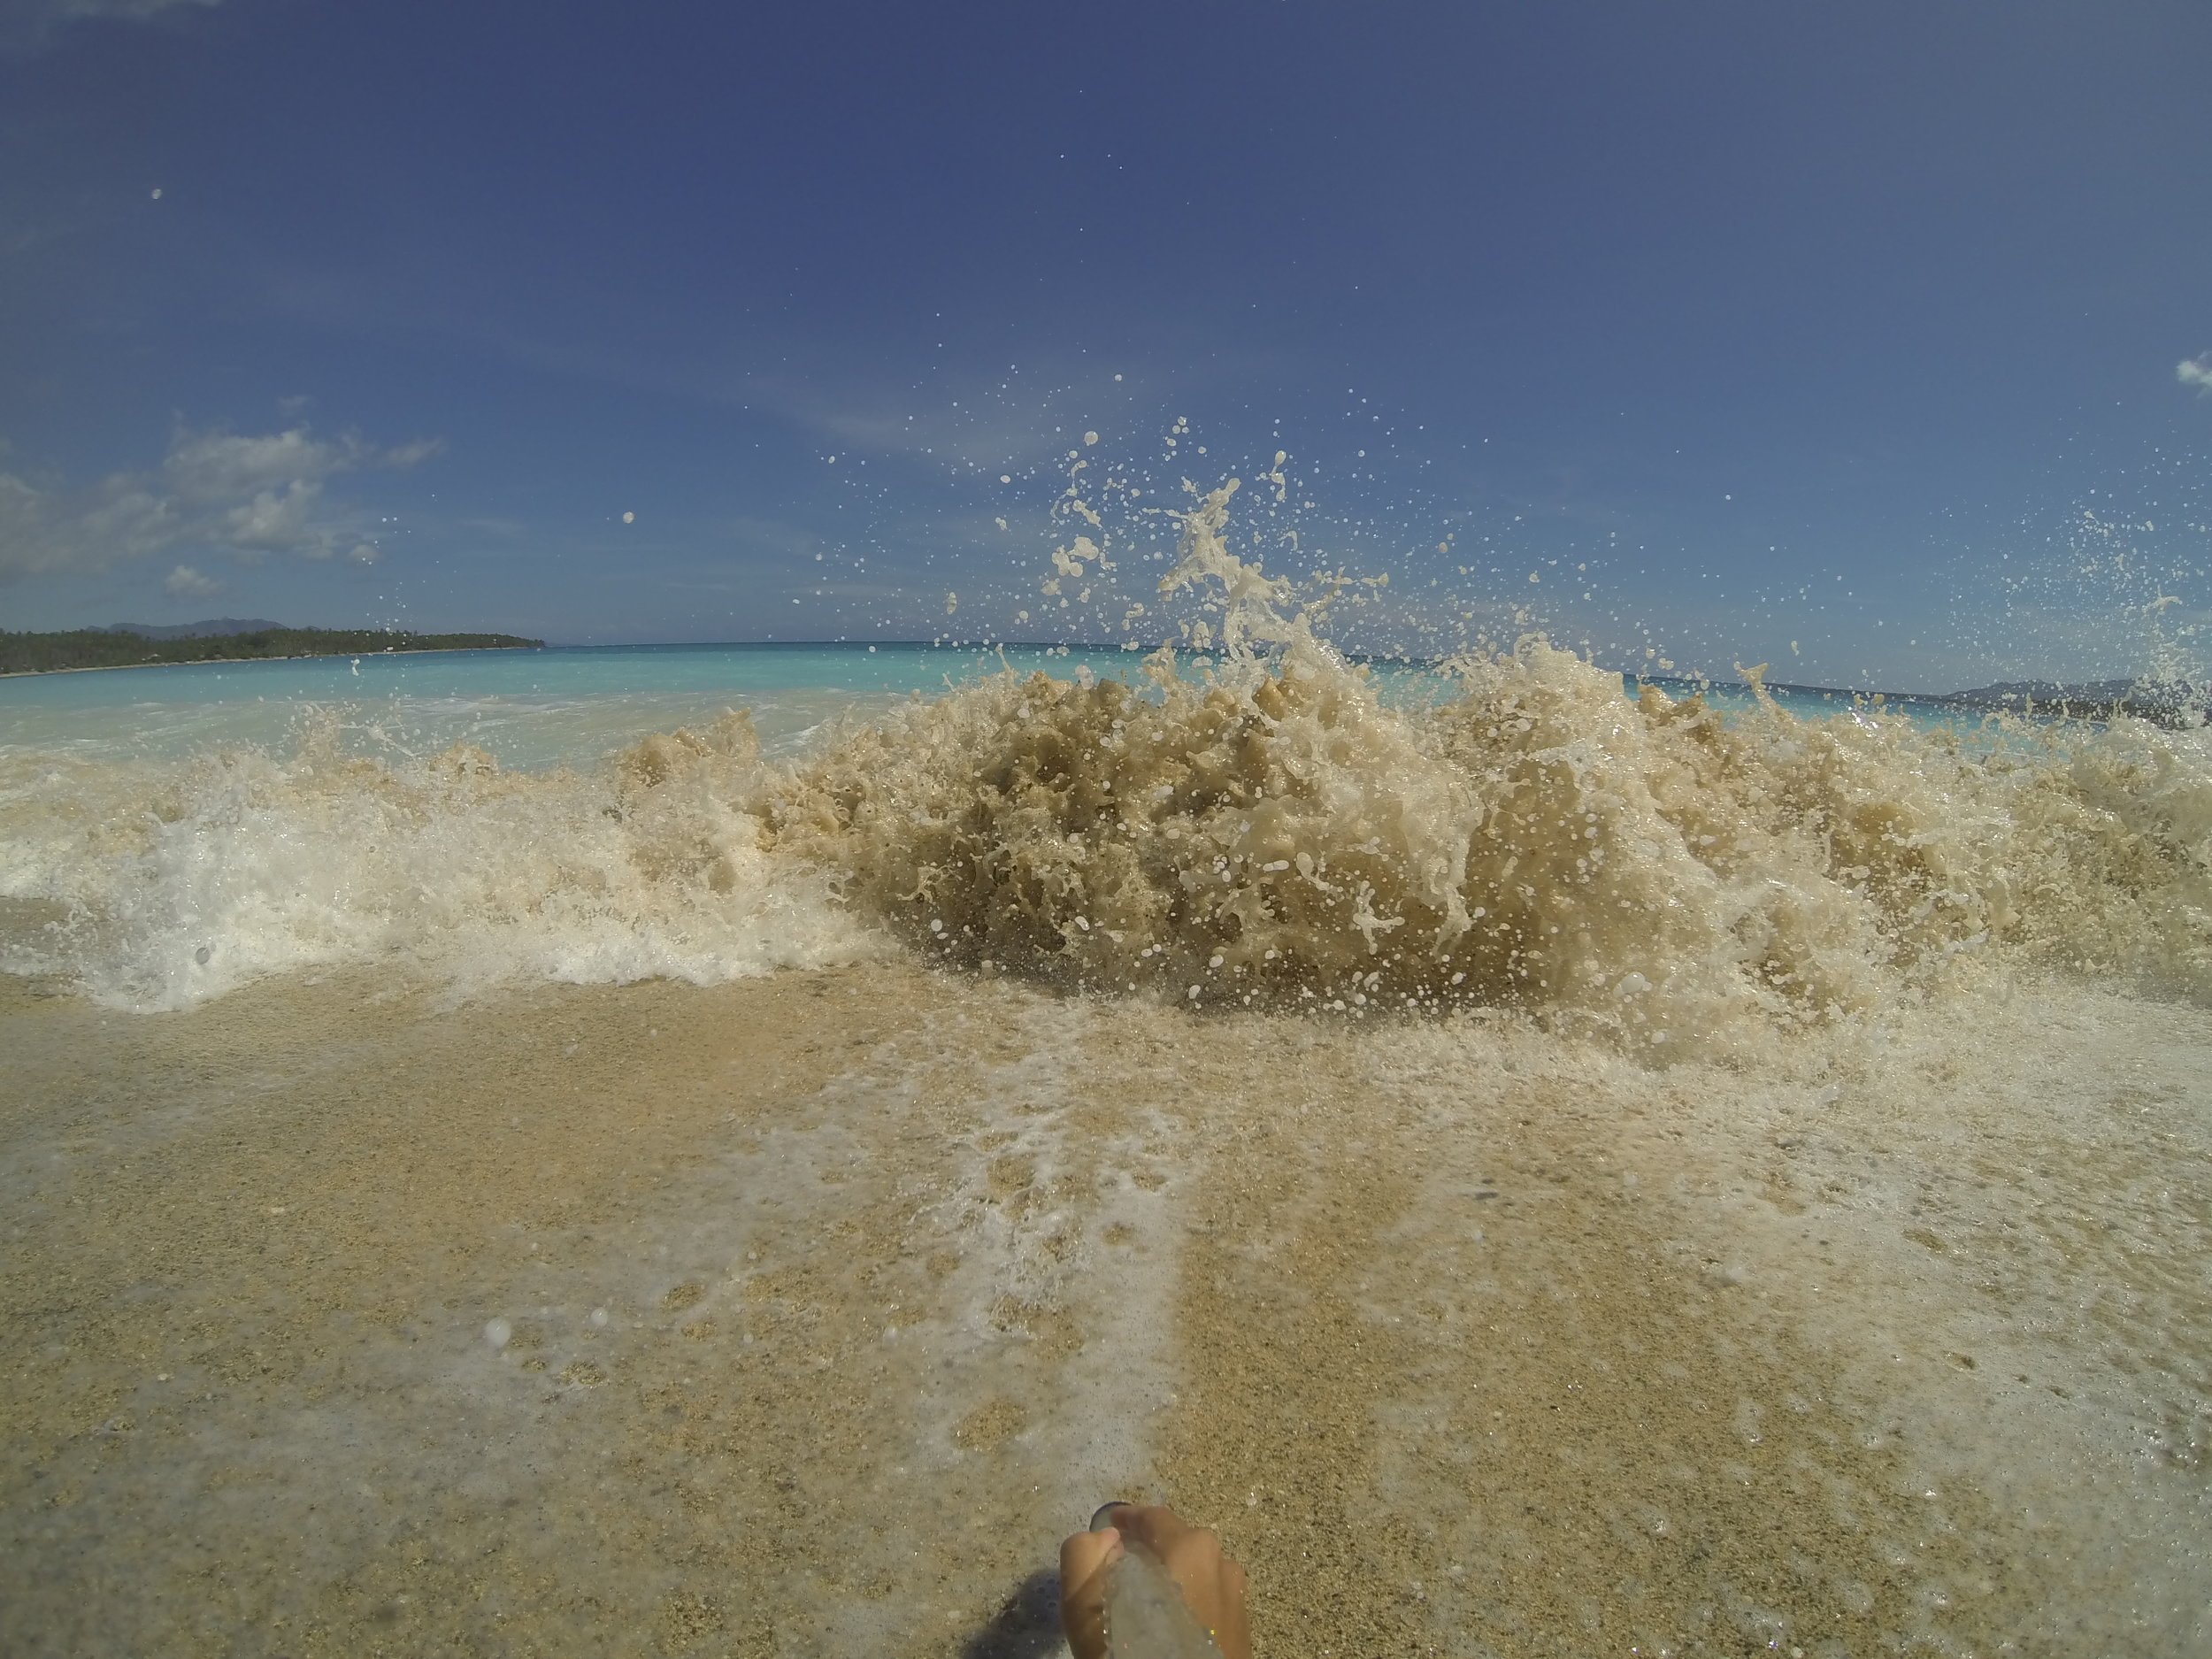 Enjoying the crashing waves of Dahican. Missing these kinds of days.